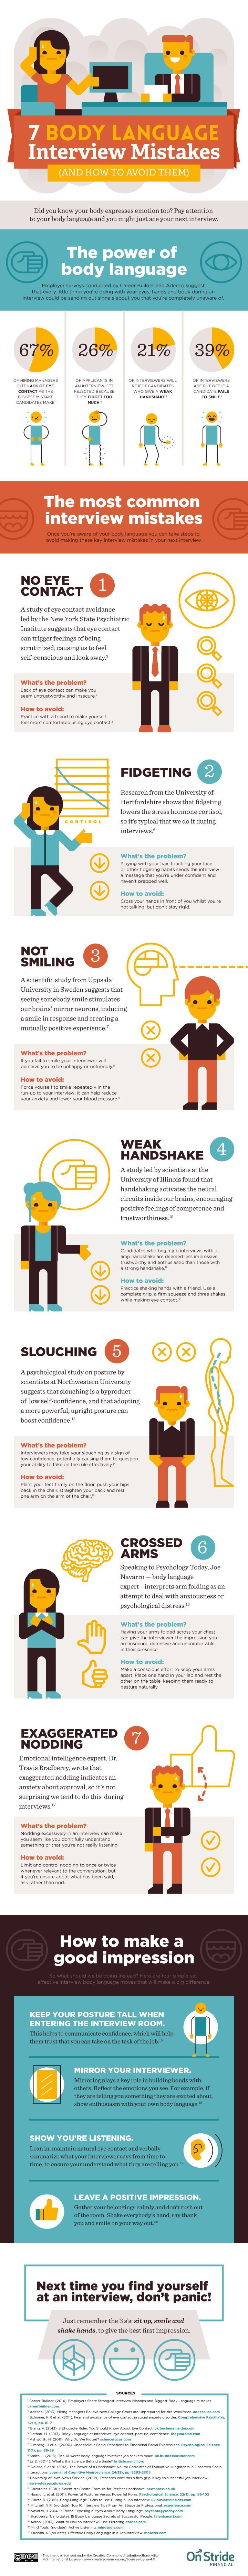 Educational Infographic : Educational Infographic : The 7 Body Language Job  Interview Mistakes Infographic